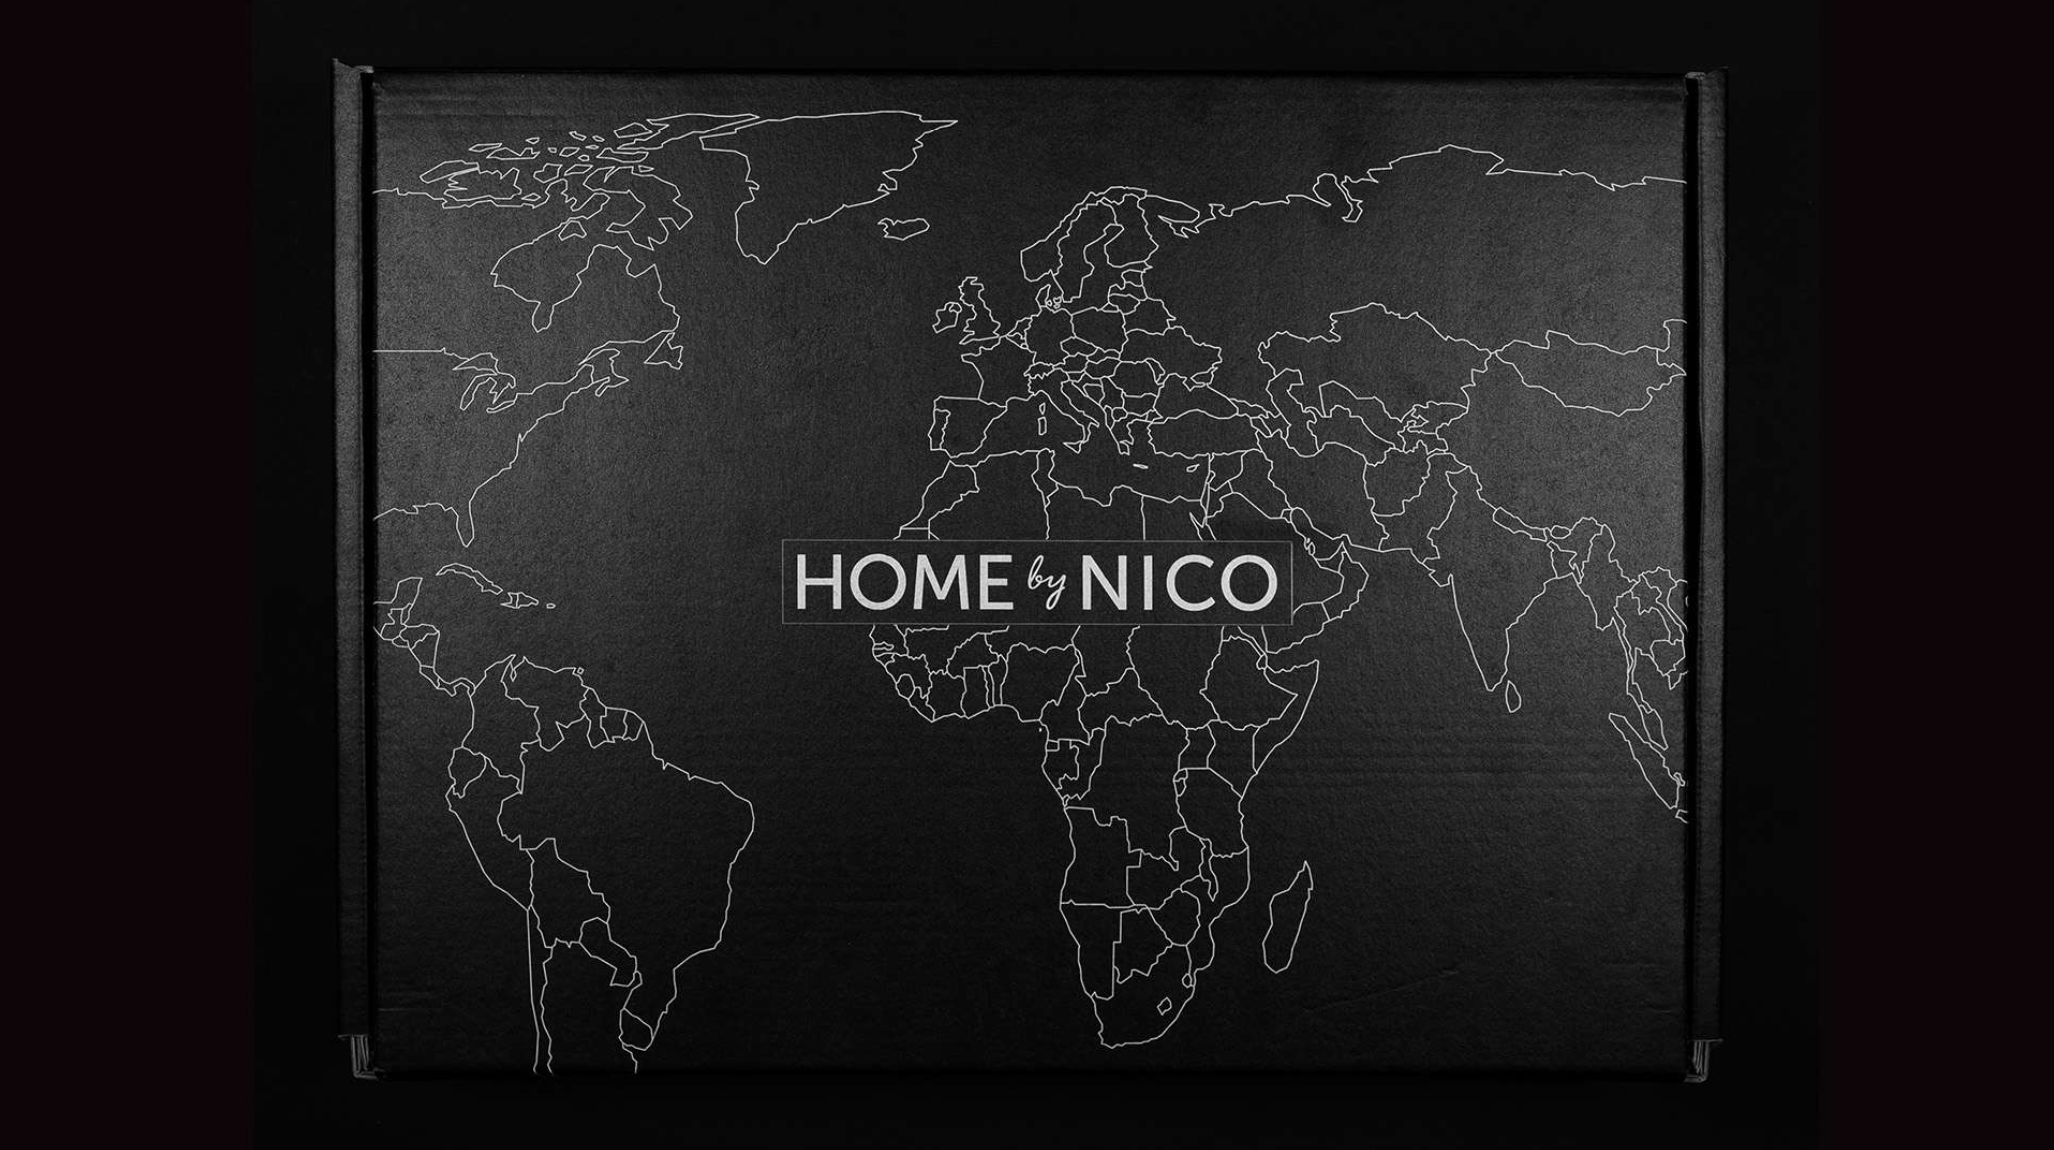 Home X The New Dining Concept From The Team Behind Six By Nico